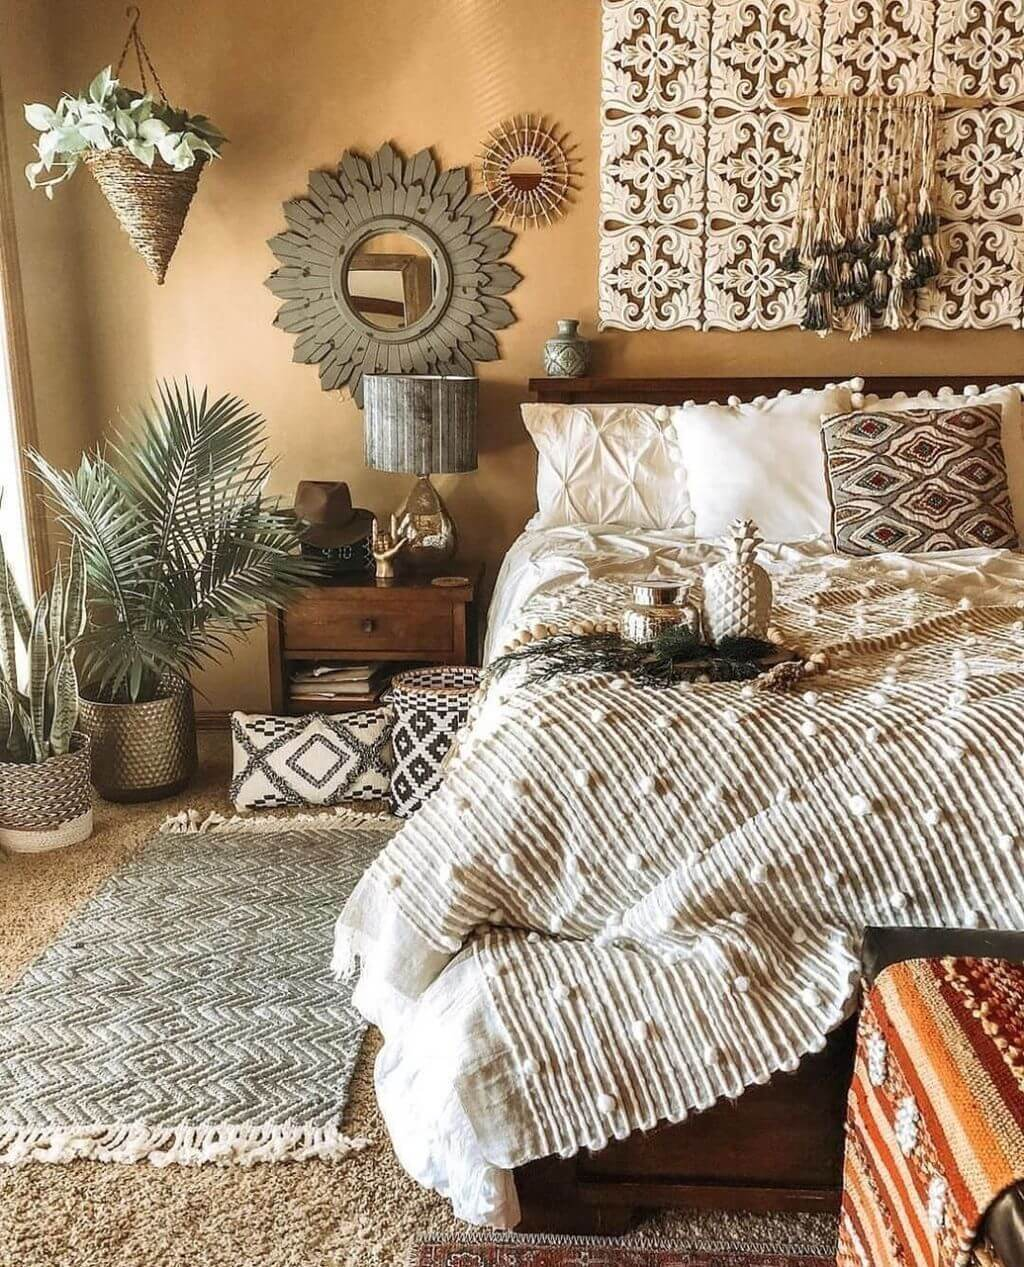 25 Absorbing Rustic Bedroom Concepts (Passions For Sleeping) - 8A